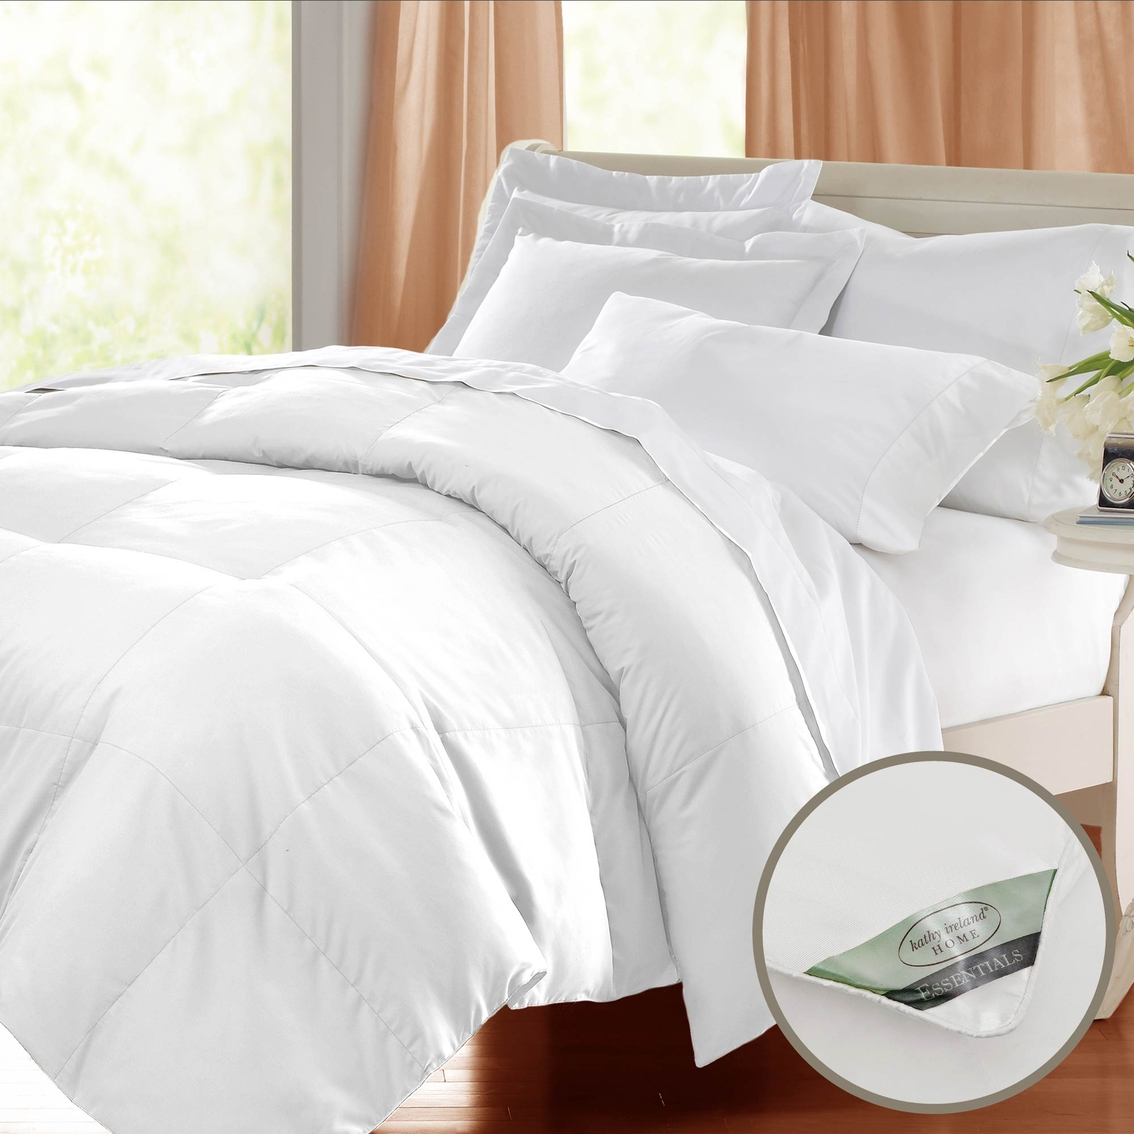 blue ridge kathy ireland essentials microfiber cover down comforter down down alternative. Black Bedroom Furniture Sets. Home Design Ideas